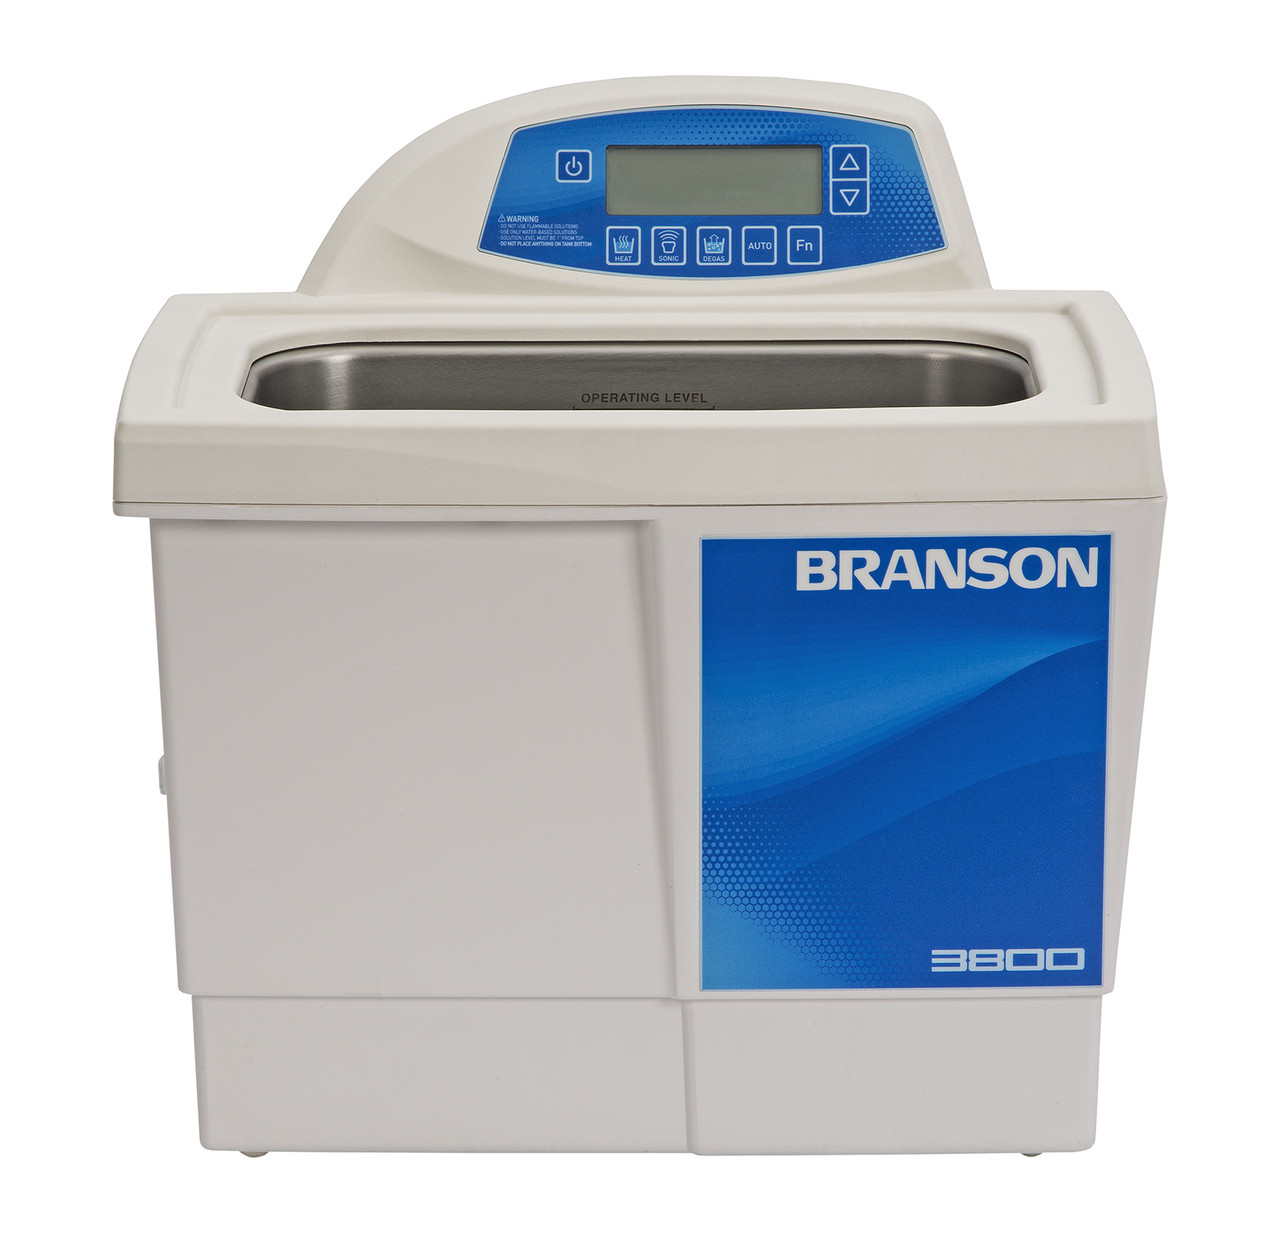 Branson CPX3800H Ultrasonic Cleaner